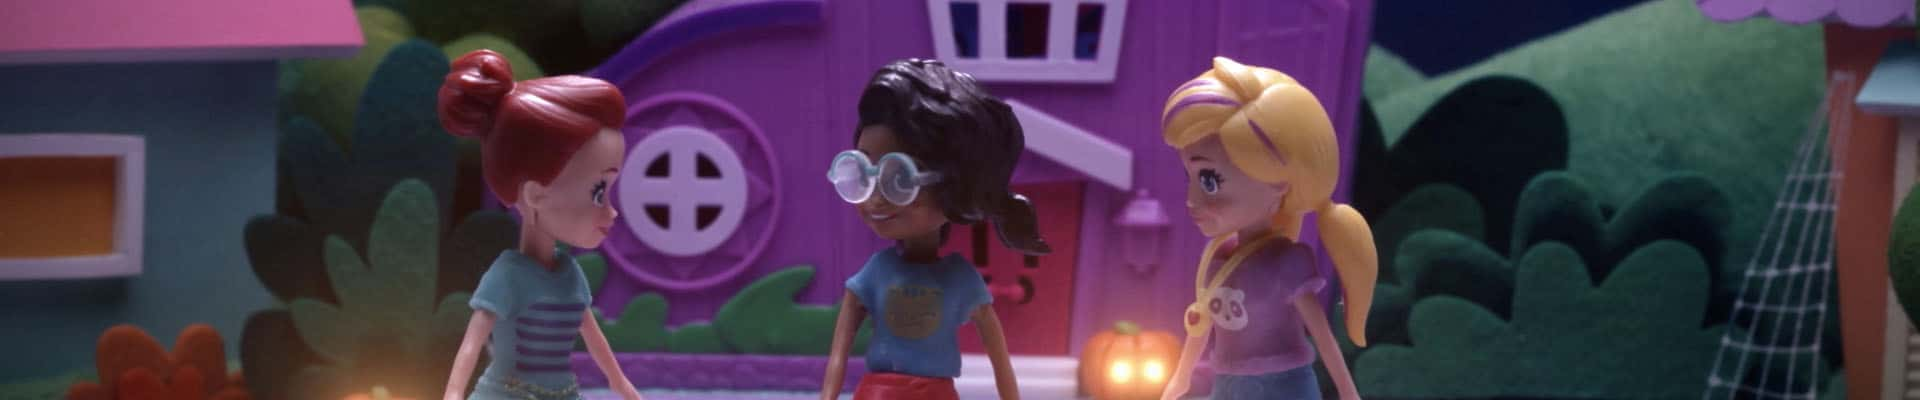 Polly Pocket Stop Motion